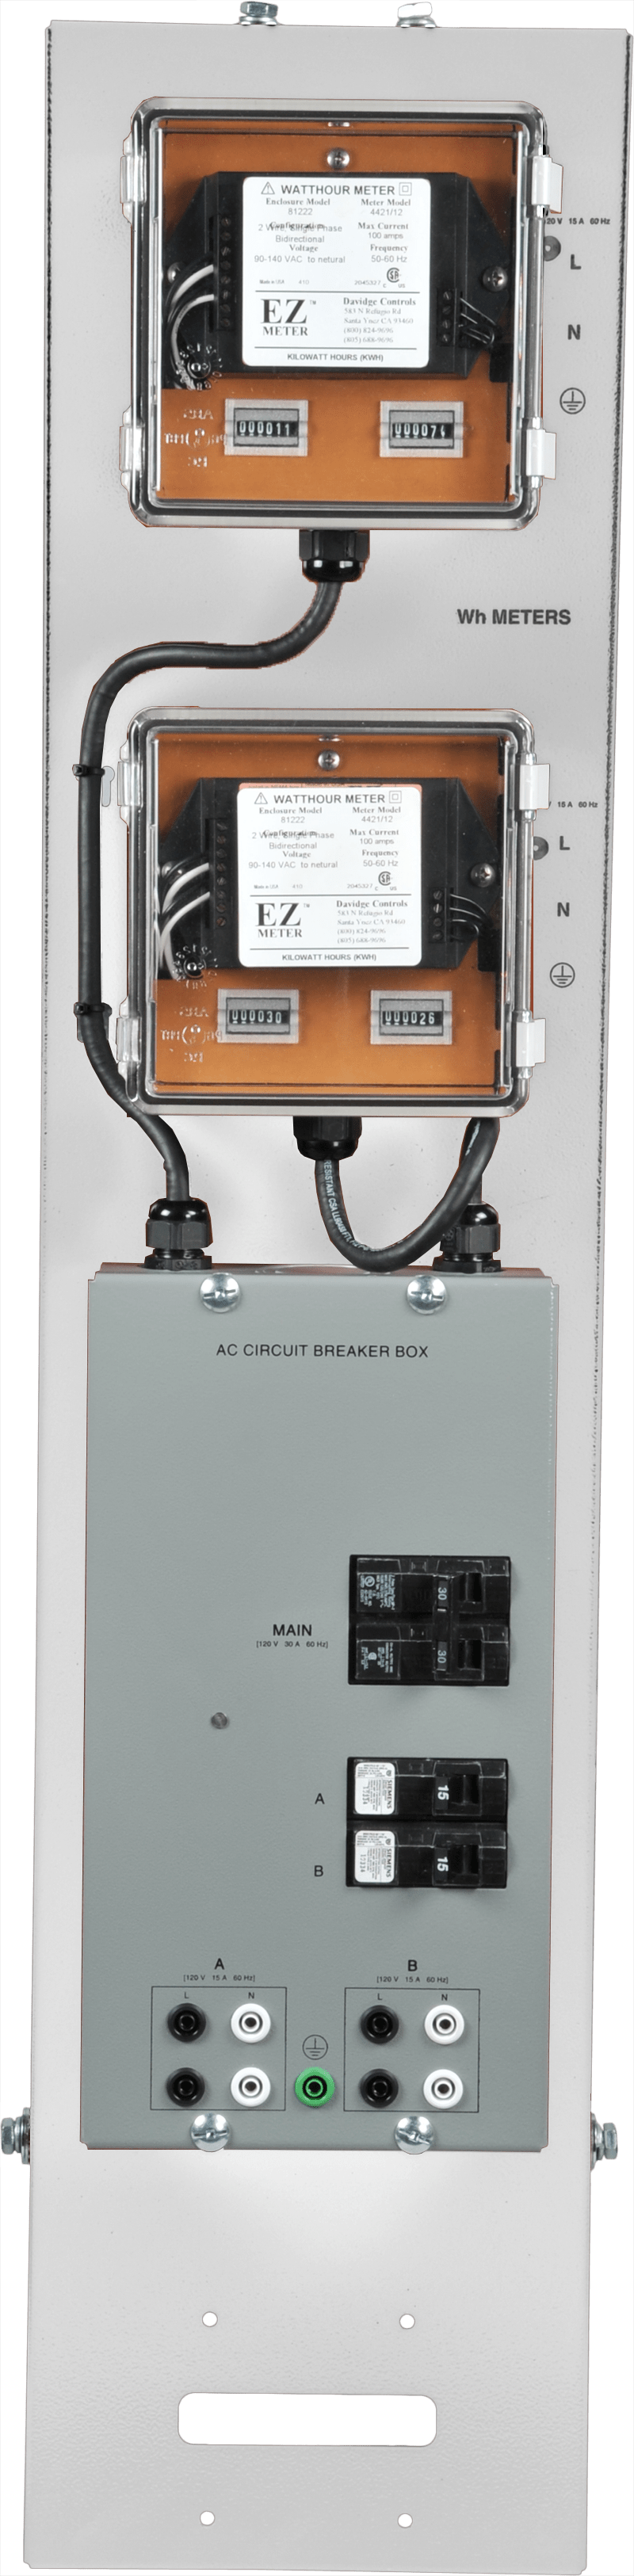 hight resolution of labvolt series by festo didactic kwh meters with ac electric breaker box wiring diagram residential breaker